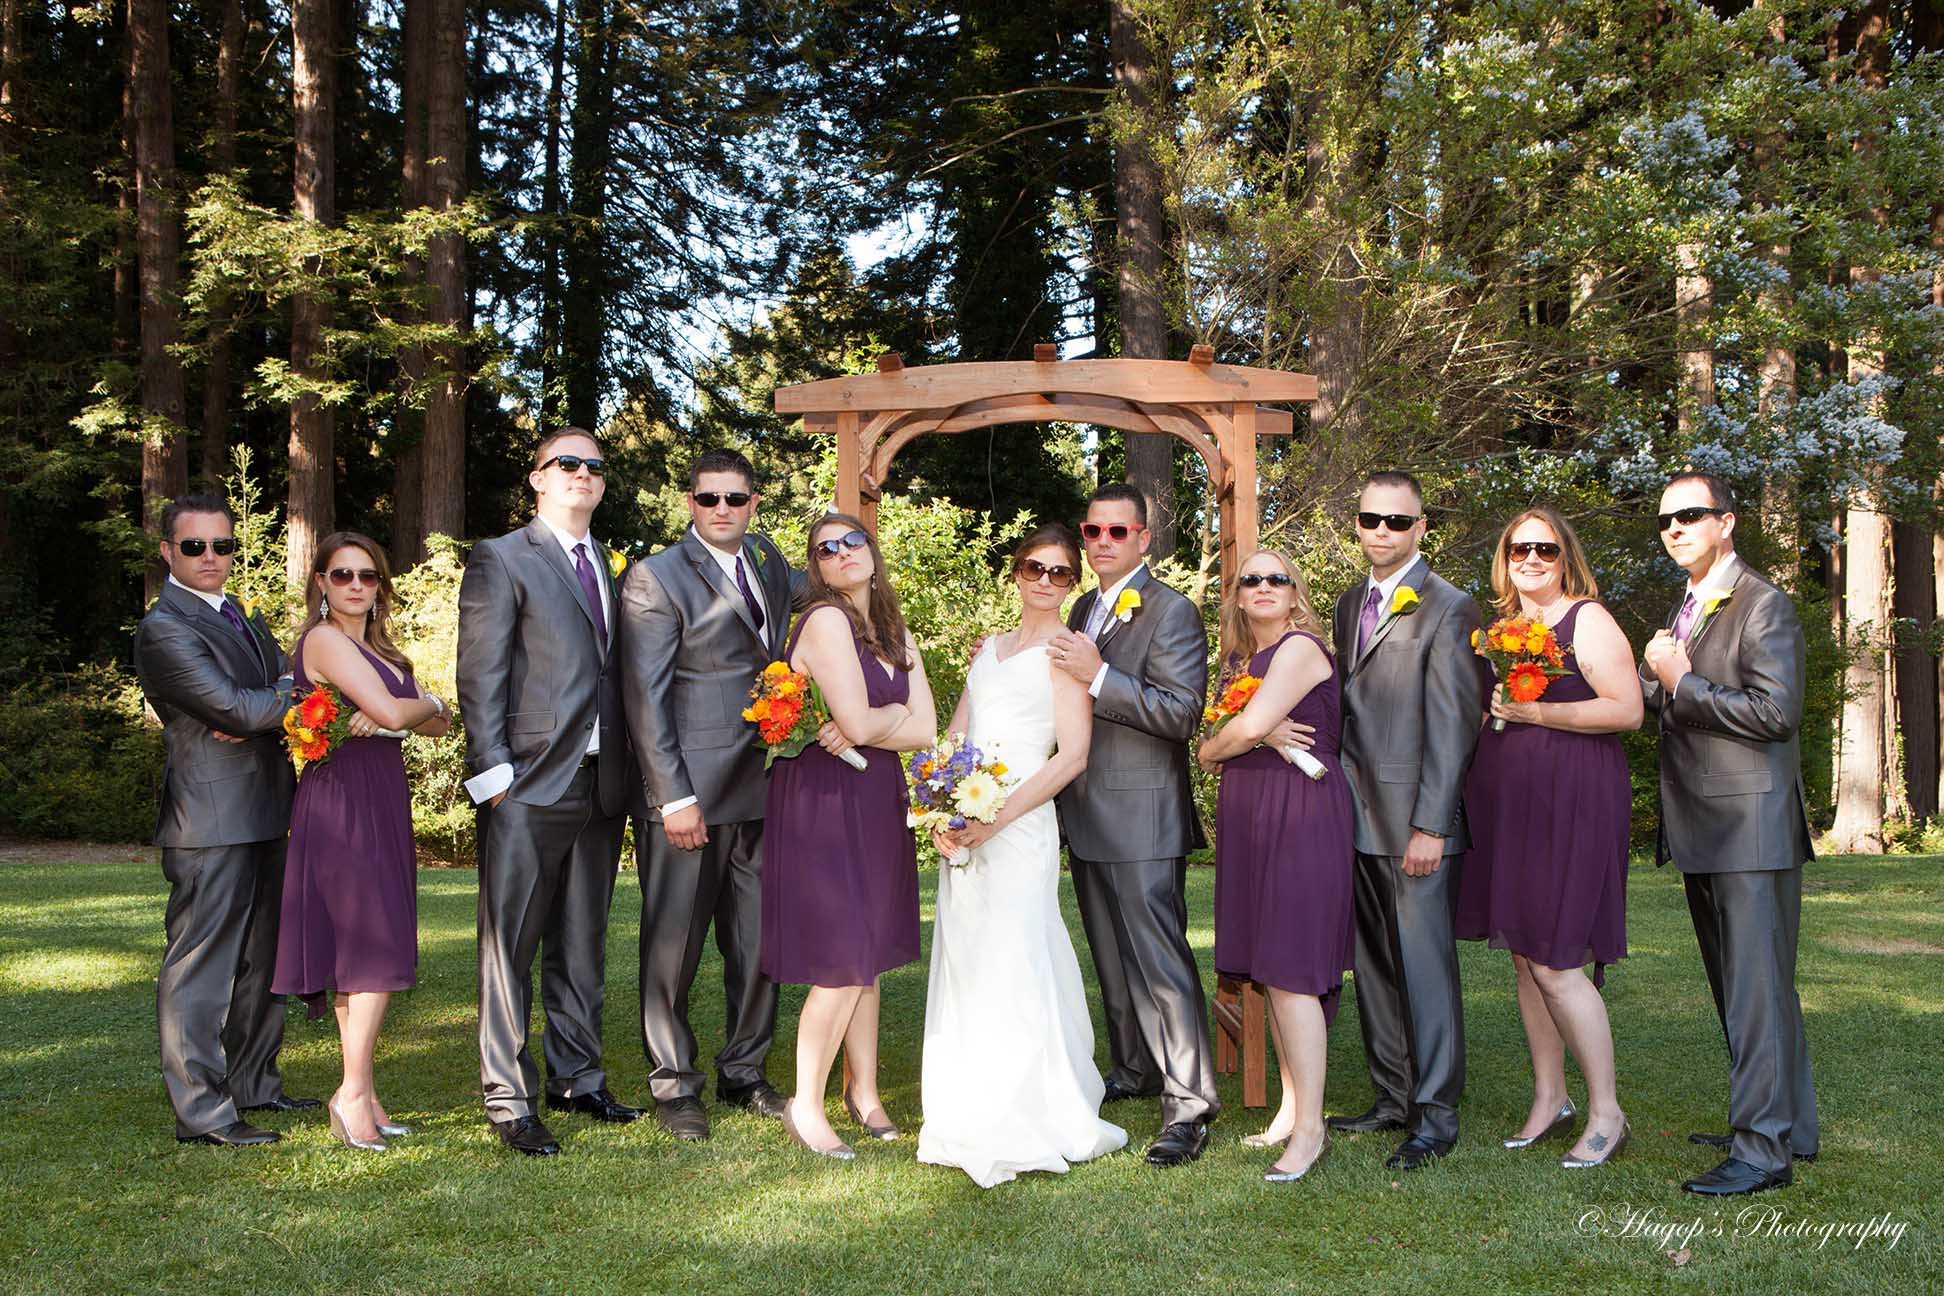 bridal party photo after the ceremony